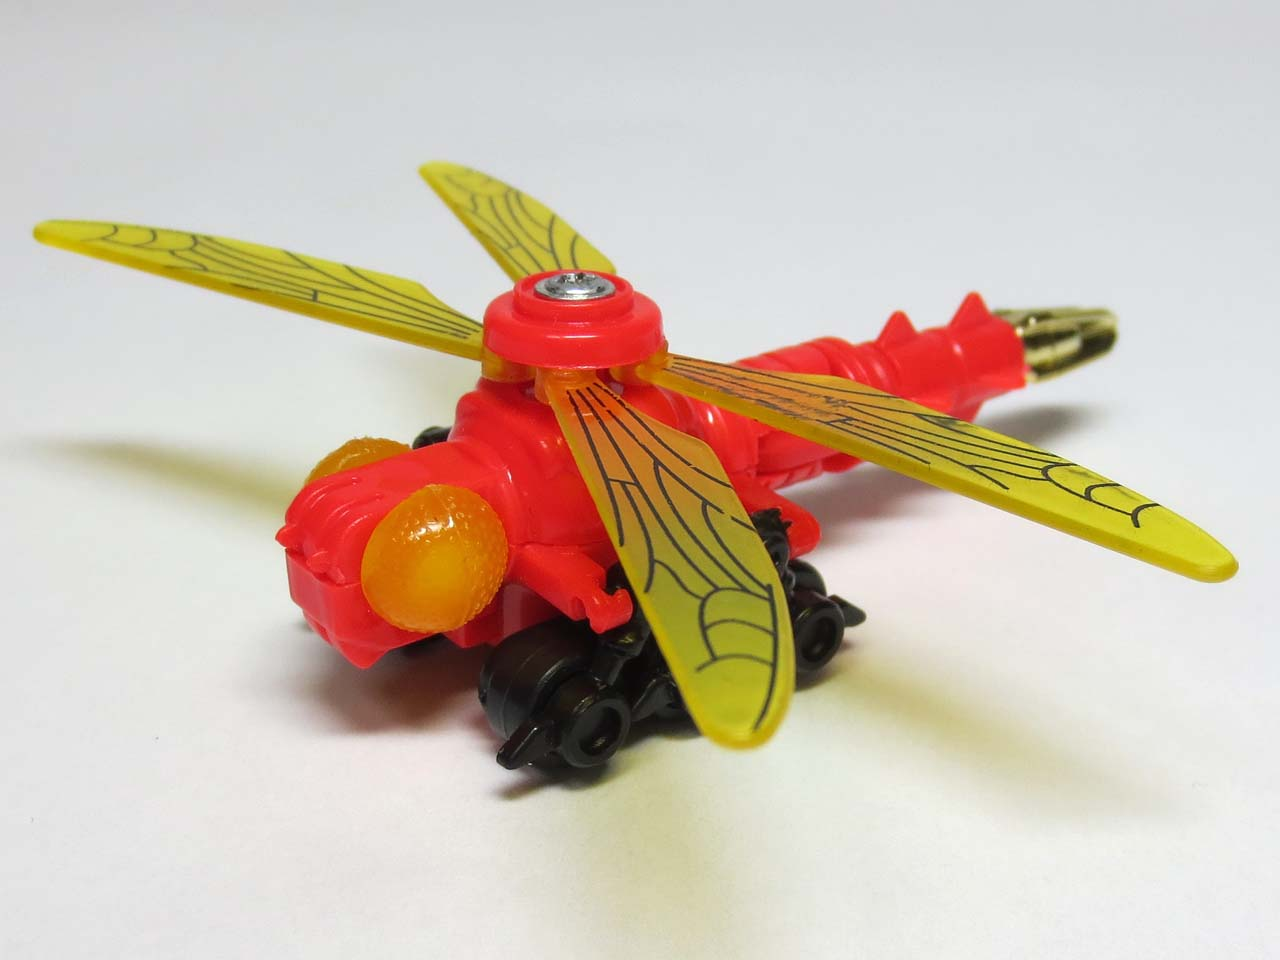 Insect_Combined_robot_07.jpg